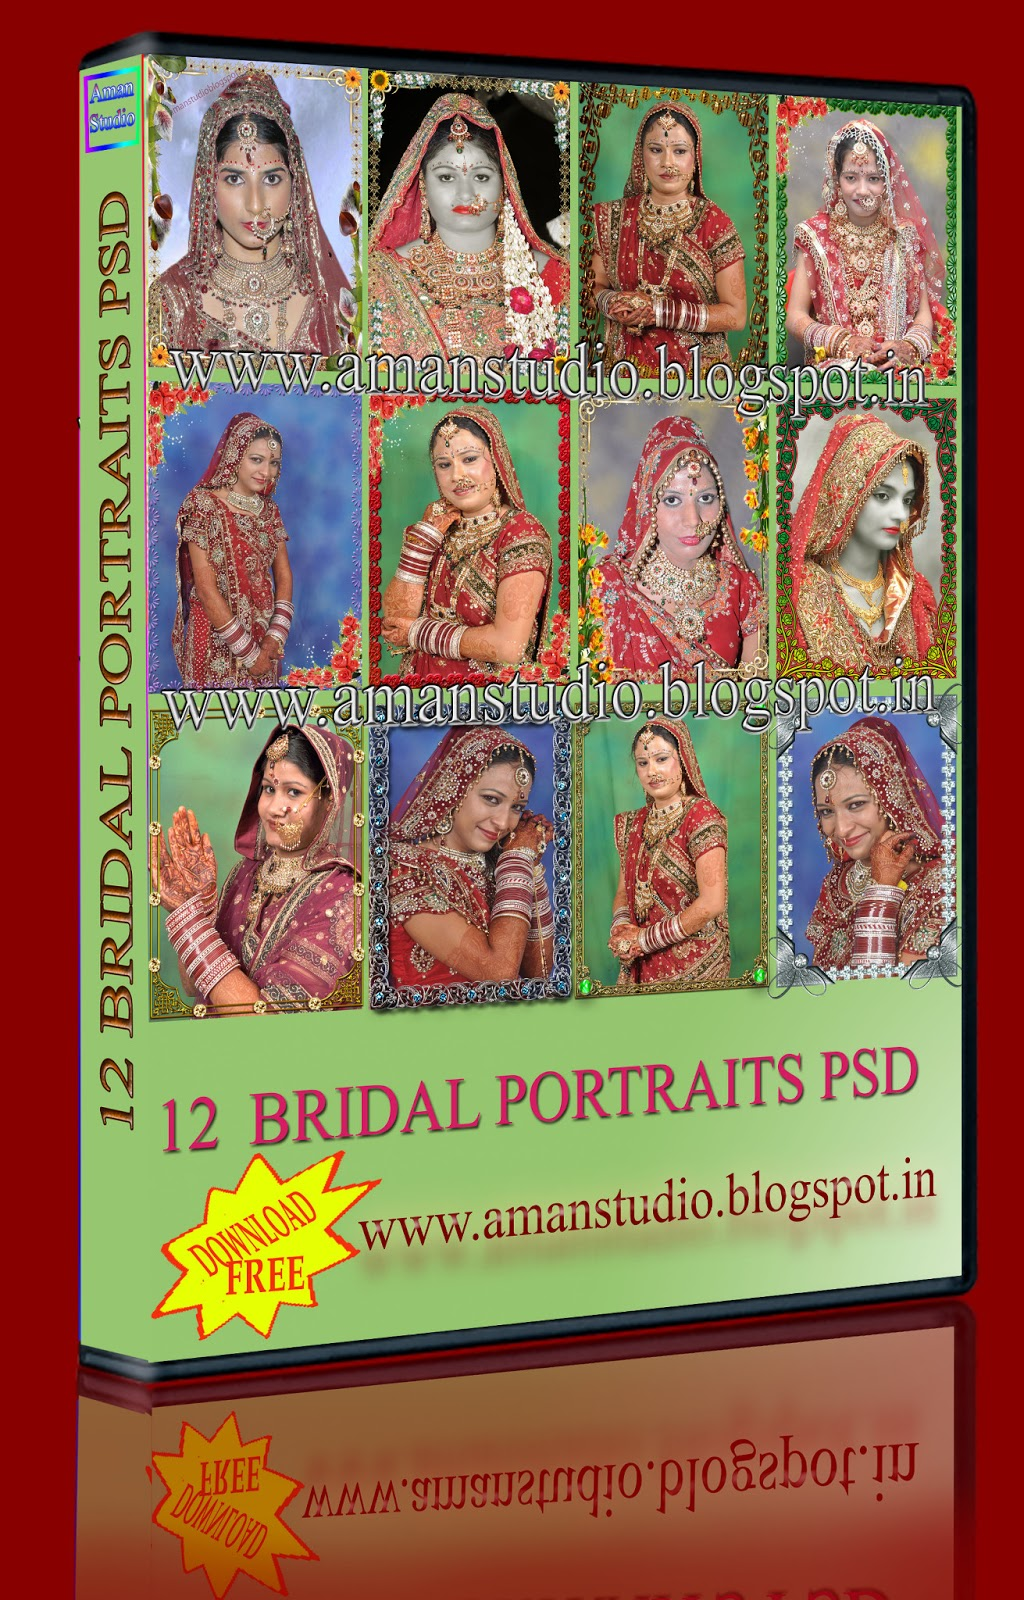 12 BRIDAL PORTRAITS PSD